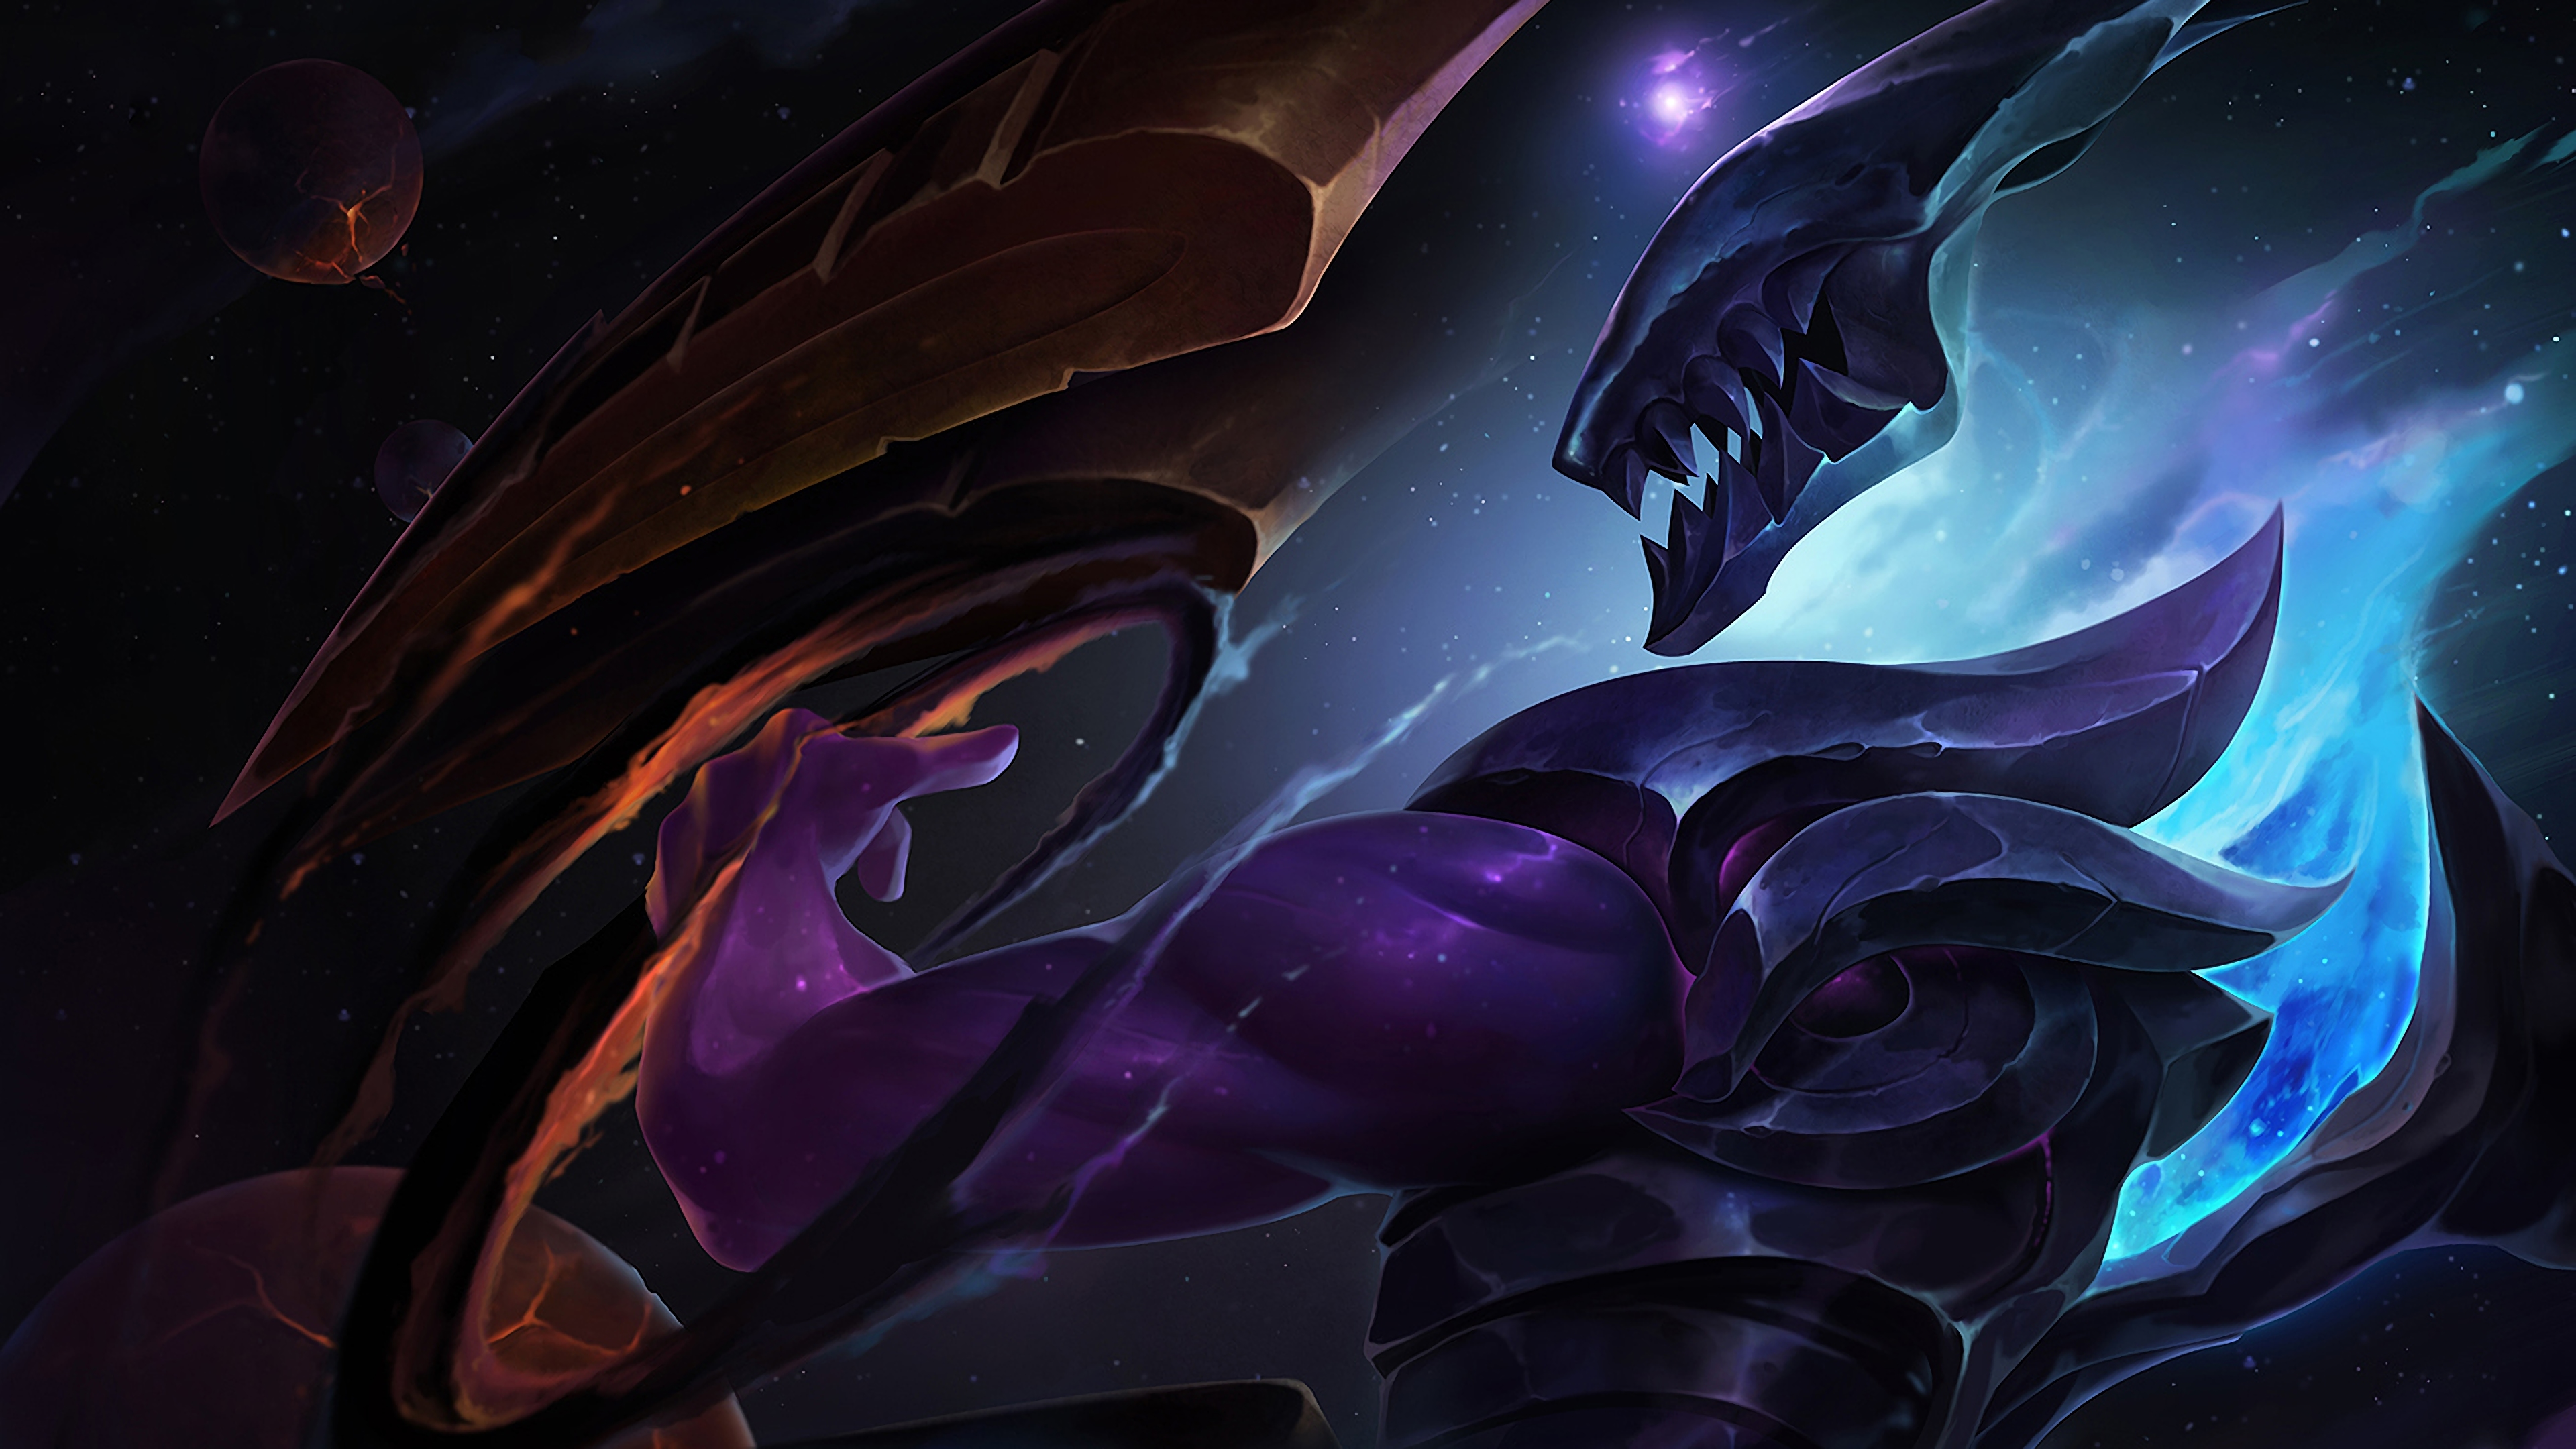 dark star varus lol art league of legends lol 1574103424 - Dark Star Varus LoL Art League of Legends lol - Varus, league of legends